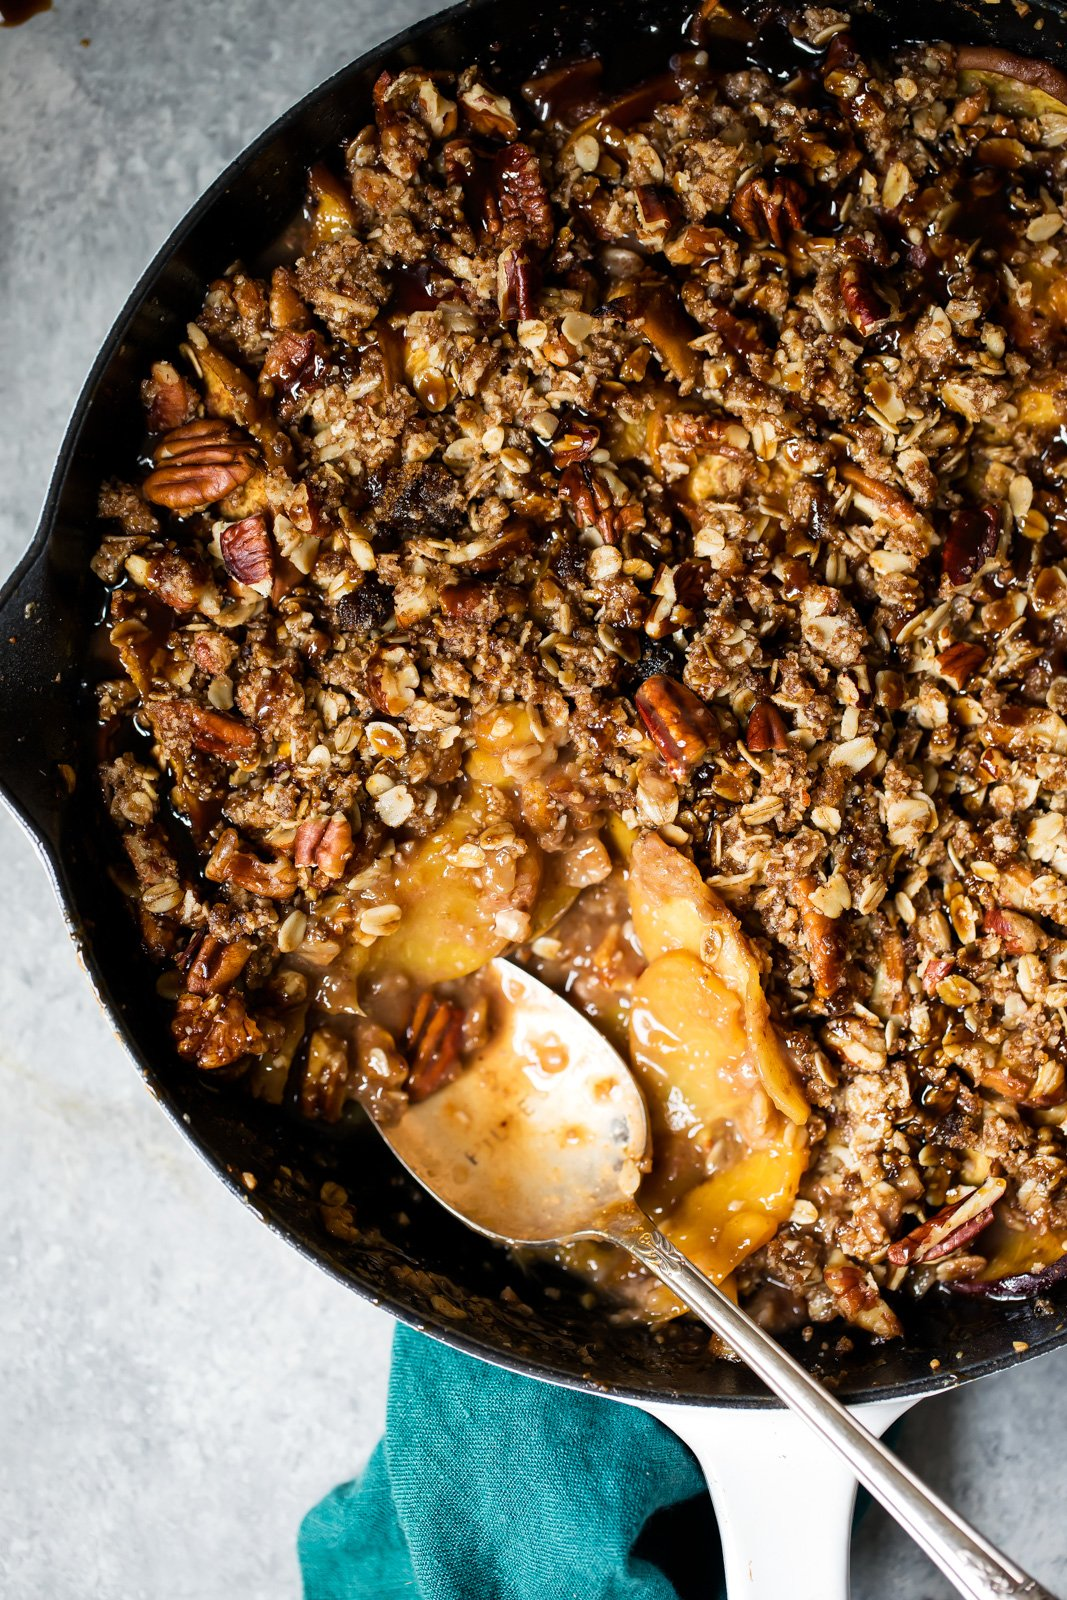 Juicy gluten free peach crisp with a crunchy pecan oat topping and a drizzle of the easiest homemade dairy free caramel. You're going to LOVE this summertime dessert. Don't forget the ice cream!